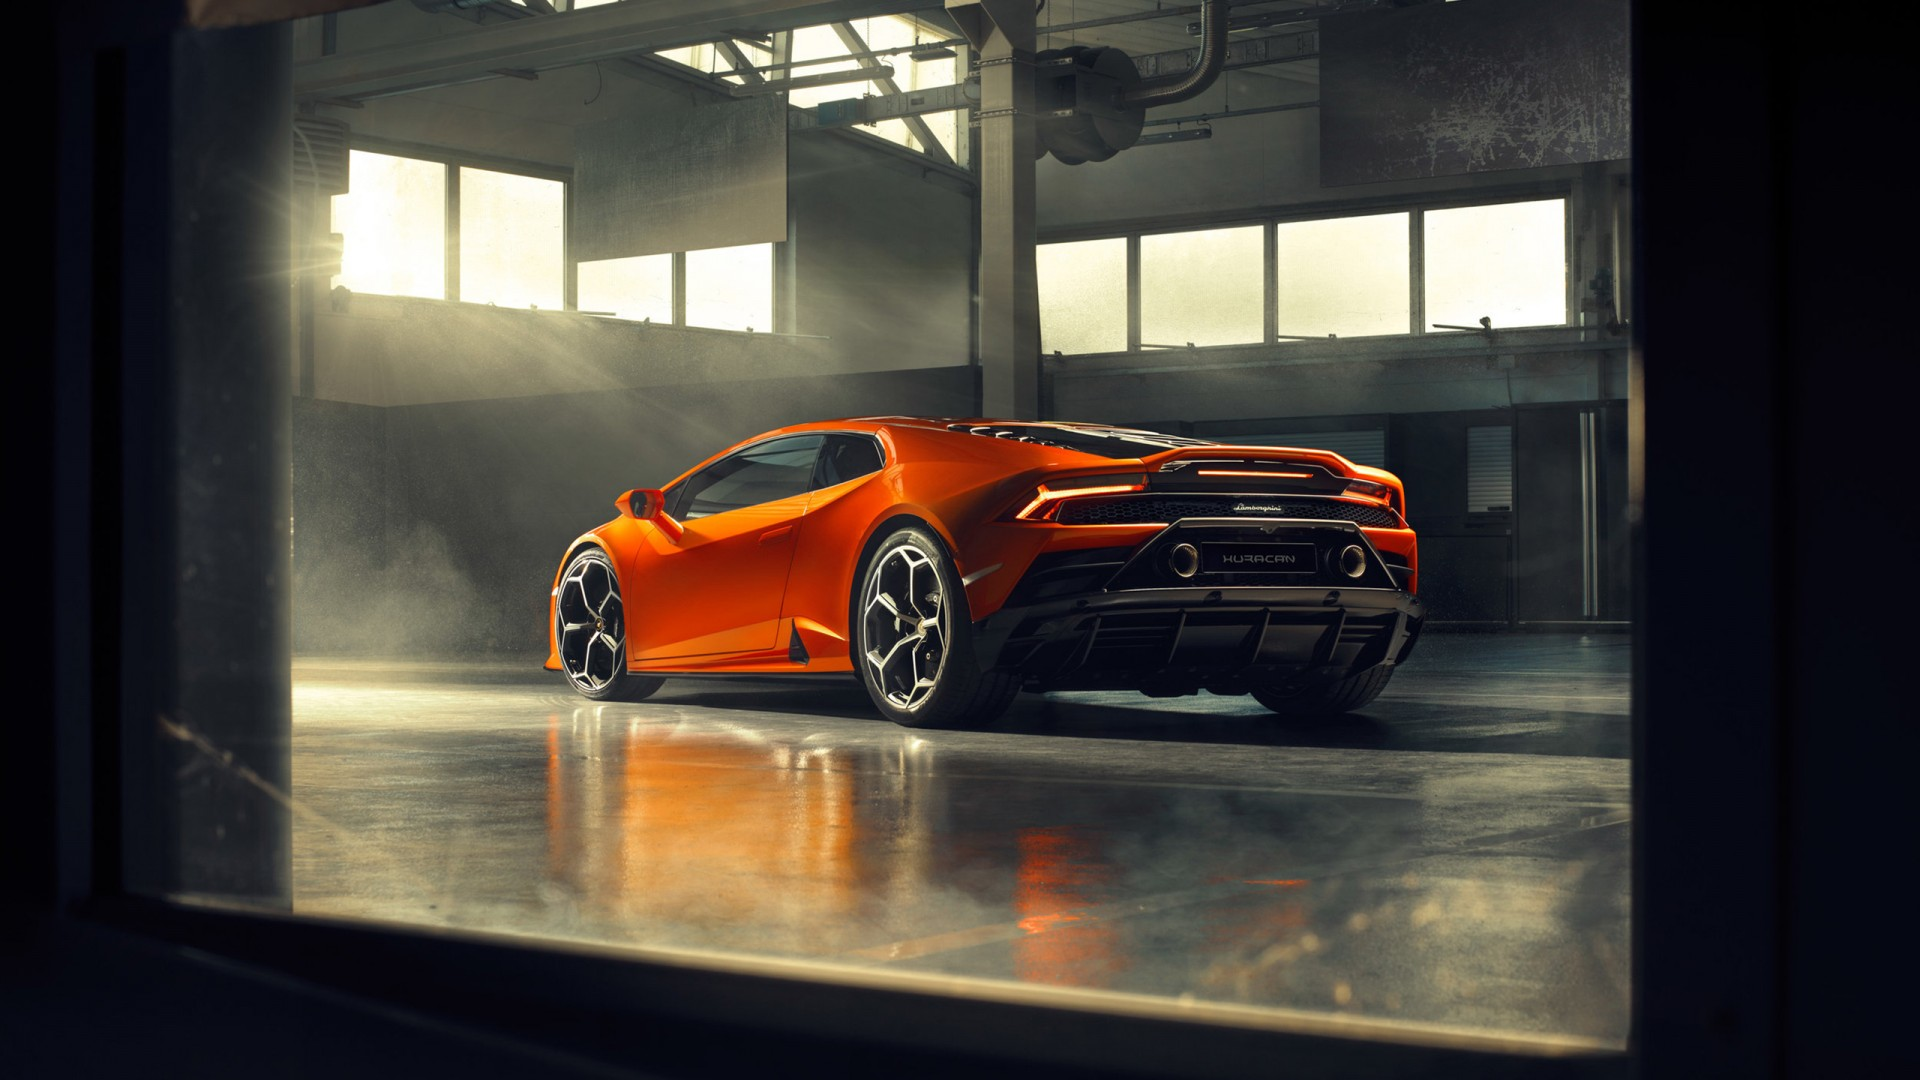 Iphone X Wallpaper Jeep Lamborghini Huracan Evo 2019 4k 2 Wallpaper Hd Car